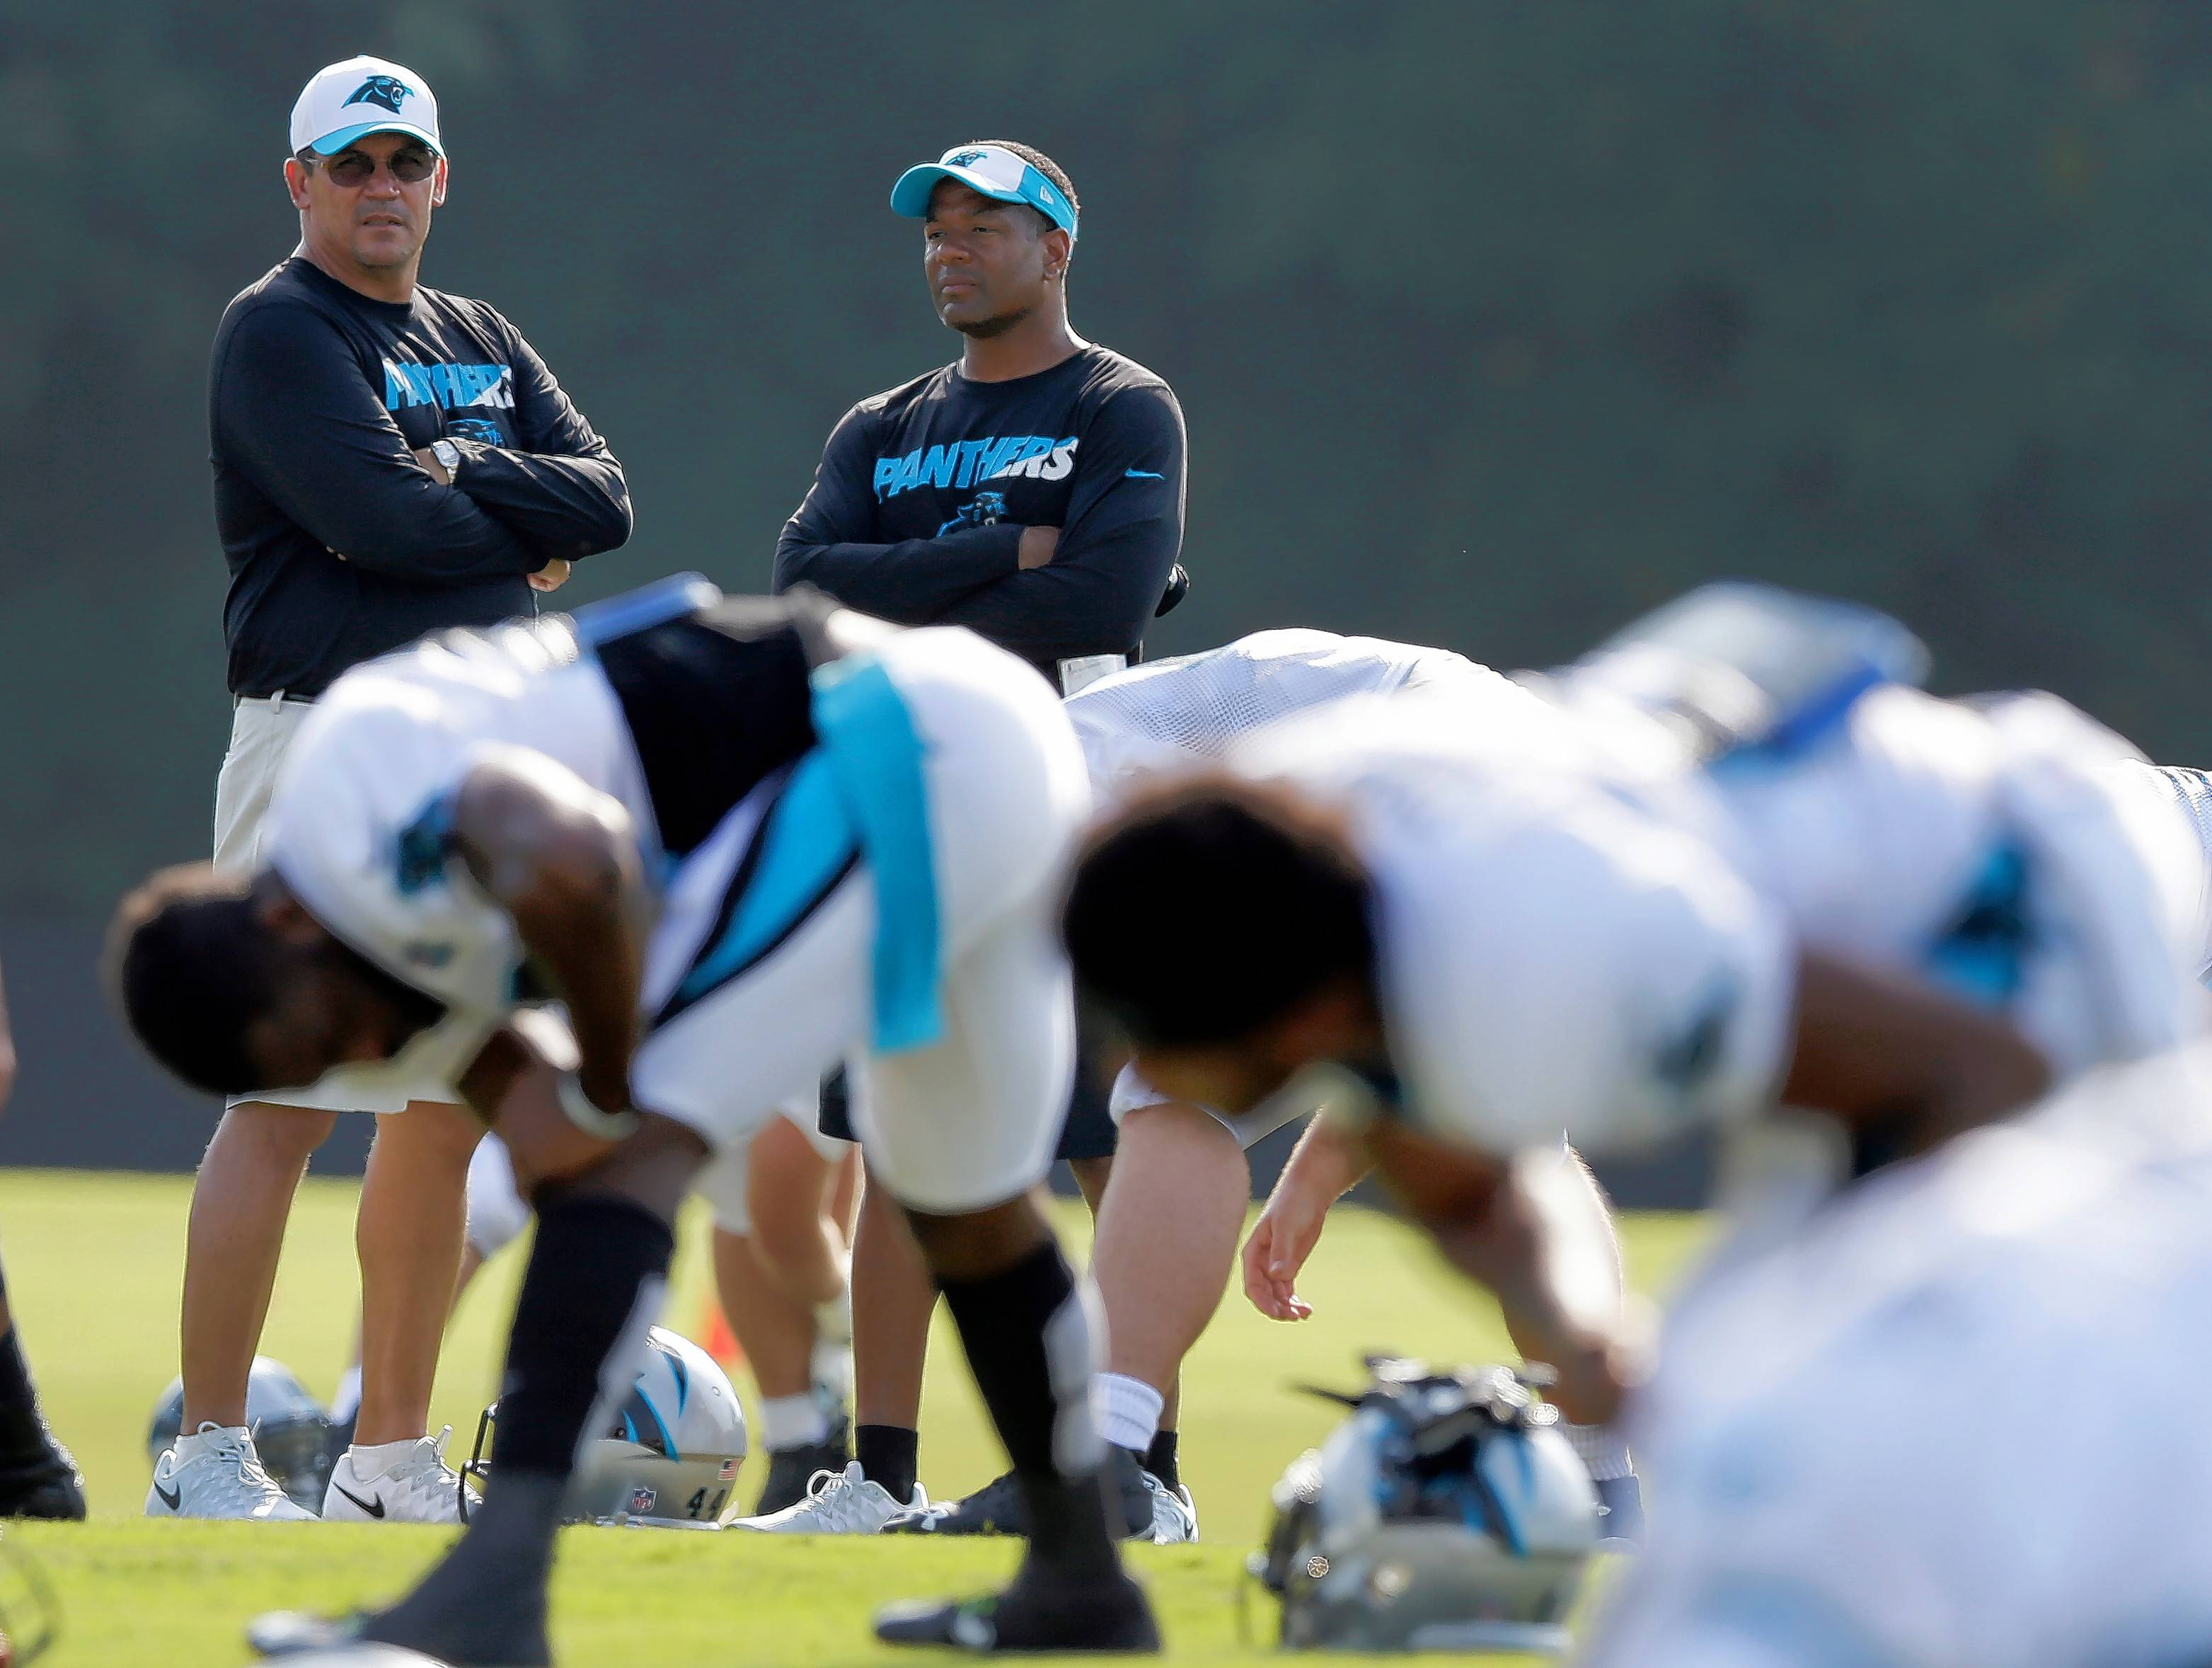 FILE -- In this Aug. 3, 2015, file photo, Carolina Panthers head coach Ron Rivera, left, talks with assistant head coach Steve Wilks, right, as players warm up during the NFL football team's training camp in Spartanburg, S.C. Rivera announced he has promoted Steve Wilks as the Panthers new defensive coordinator. Wilks has served as the Panthers defensive backs coach since 2012 and was given the additional title of assistant head coach by Rivera in 2015. He replaces Sean McDermott, who was hired as the Buffalo Bills head coach earlier this week.